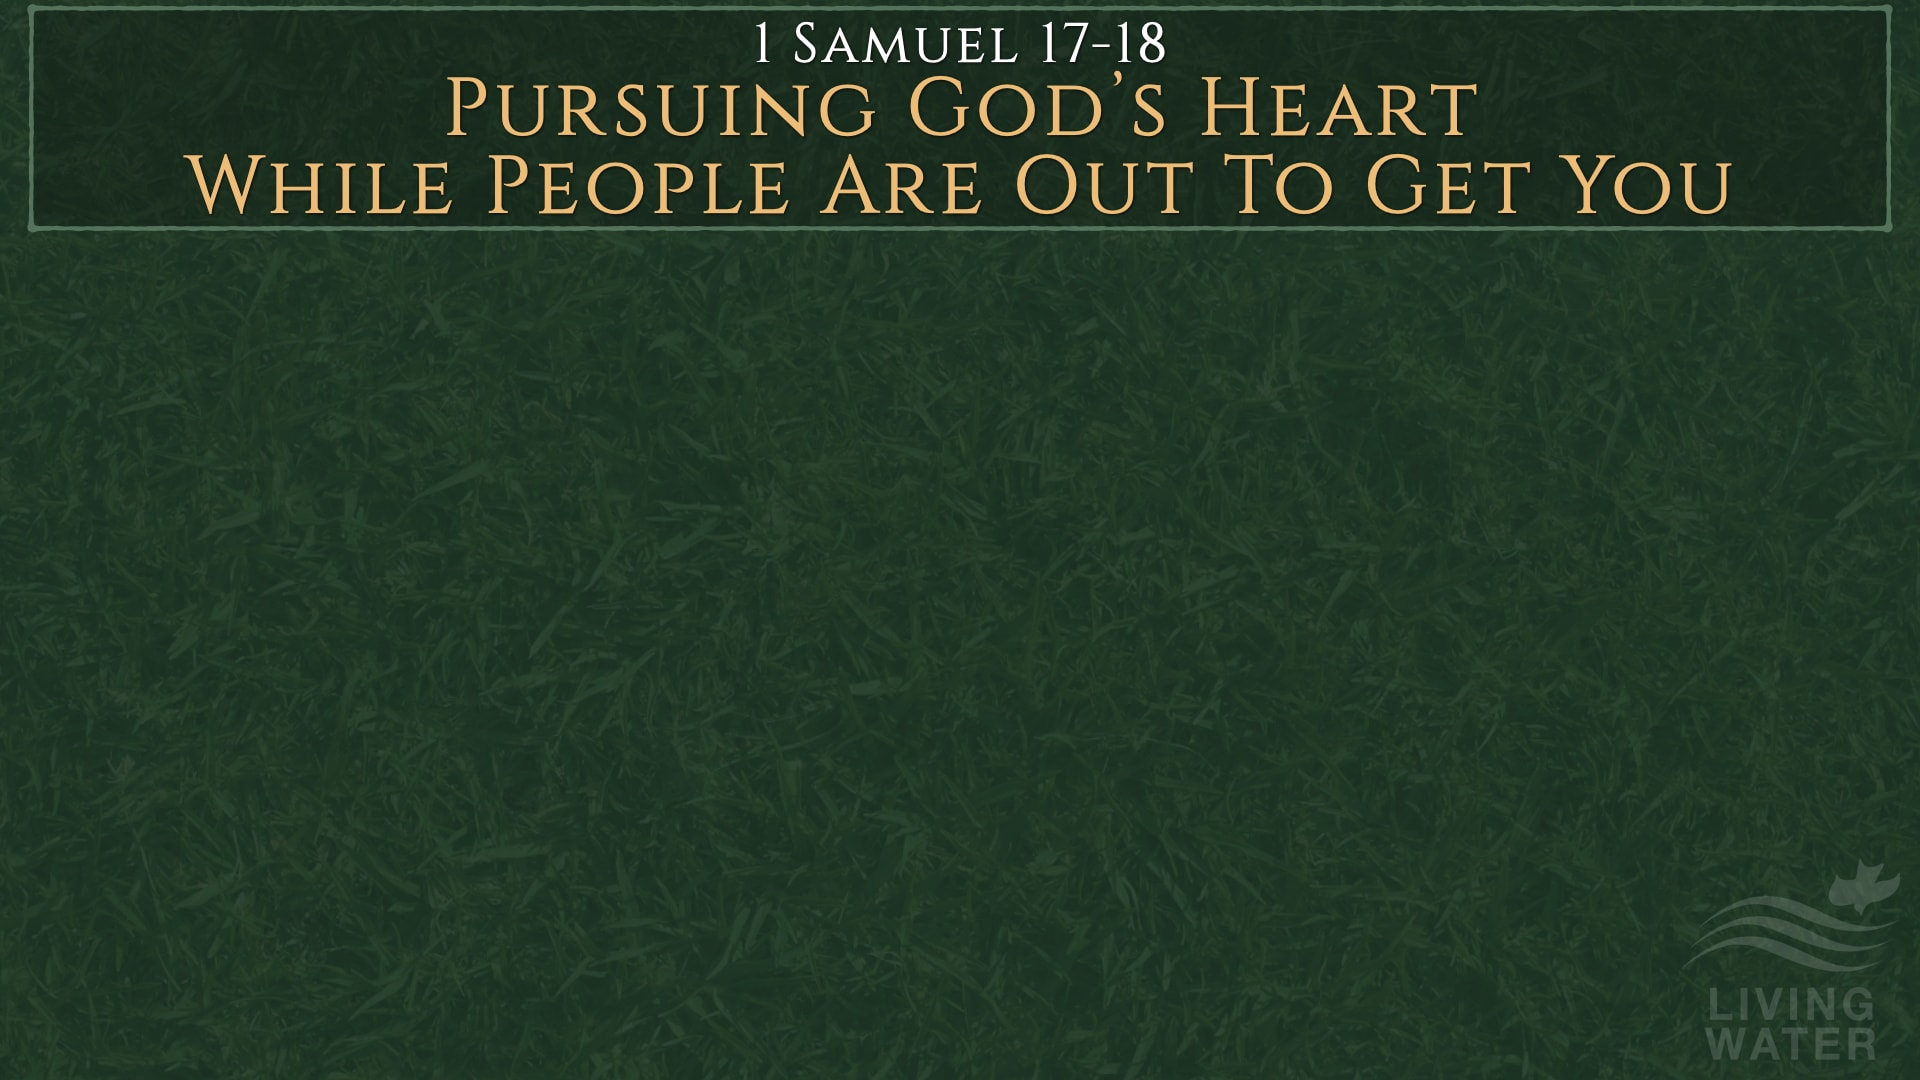 1 Samuel 17-18, Pursuing God's Heart While People Are Out To Get You